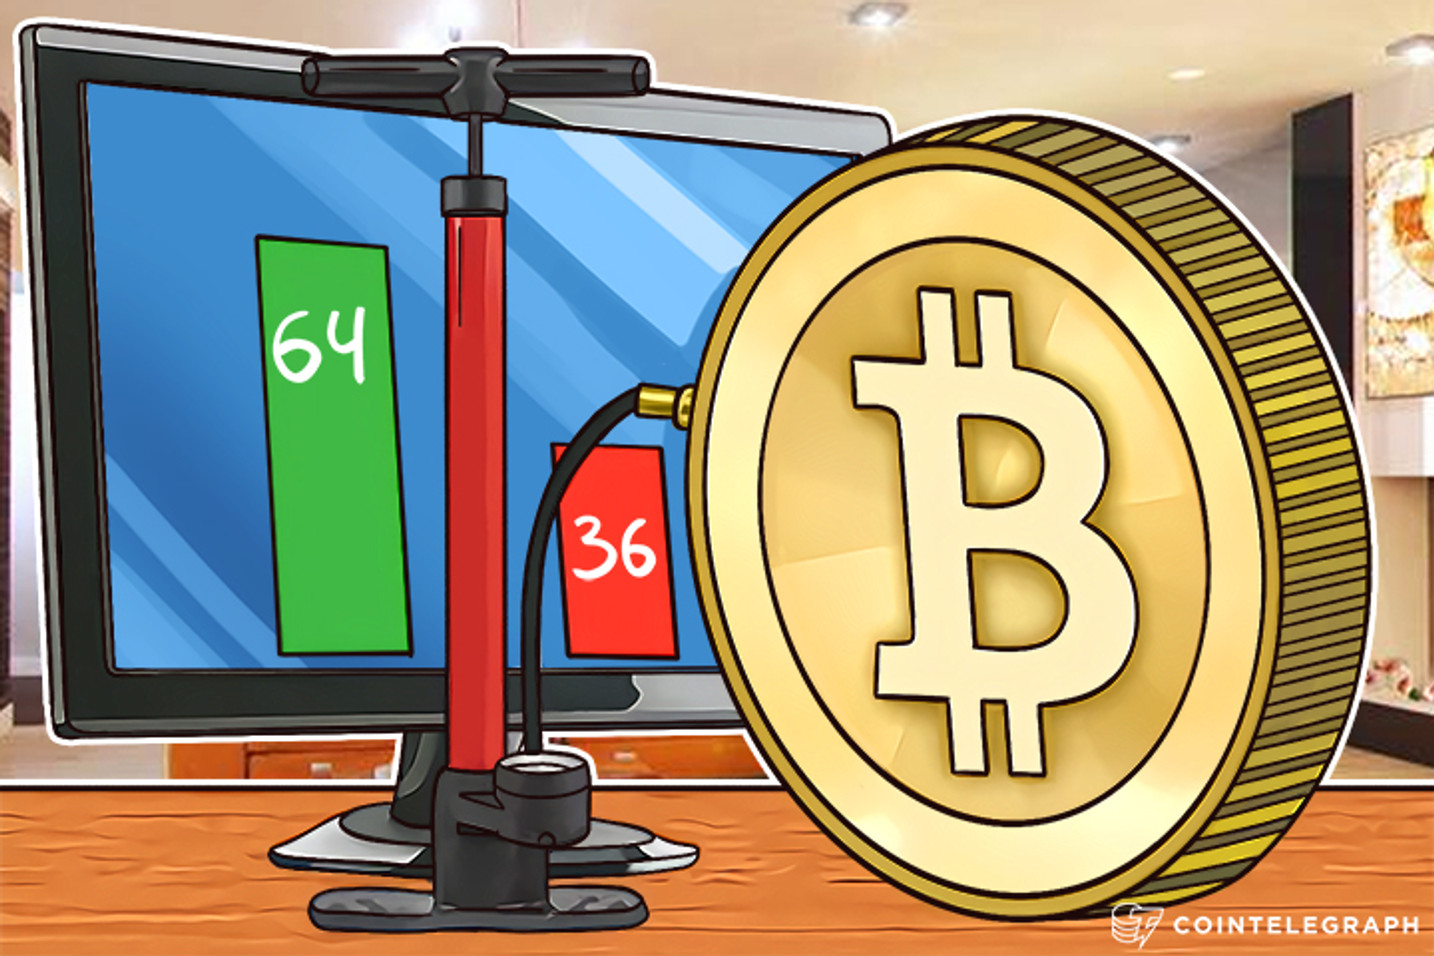 The Bigger, the Better: 64% of Bitcoin Users Vote For Block Size Increase